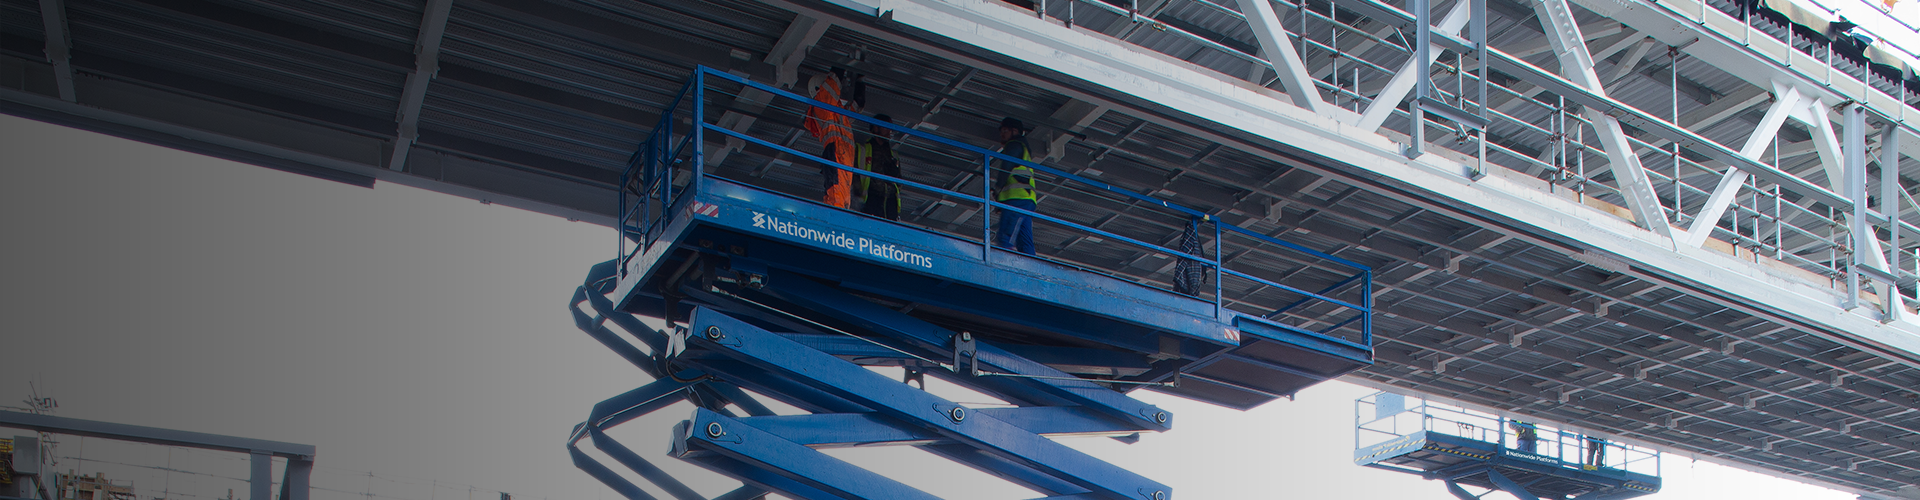 Nationwide Platforms continues to invest in its sustainable fleet